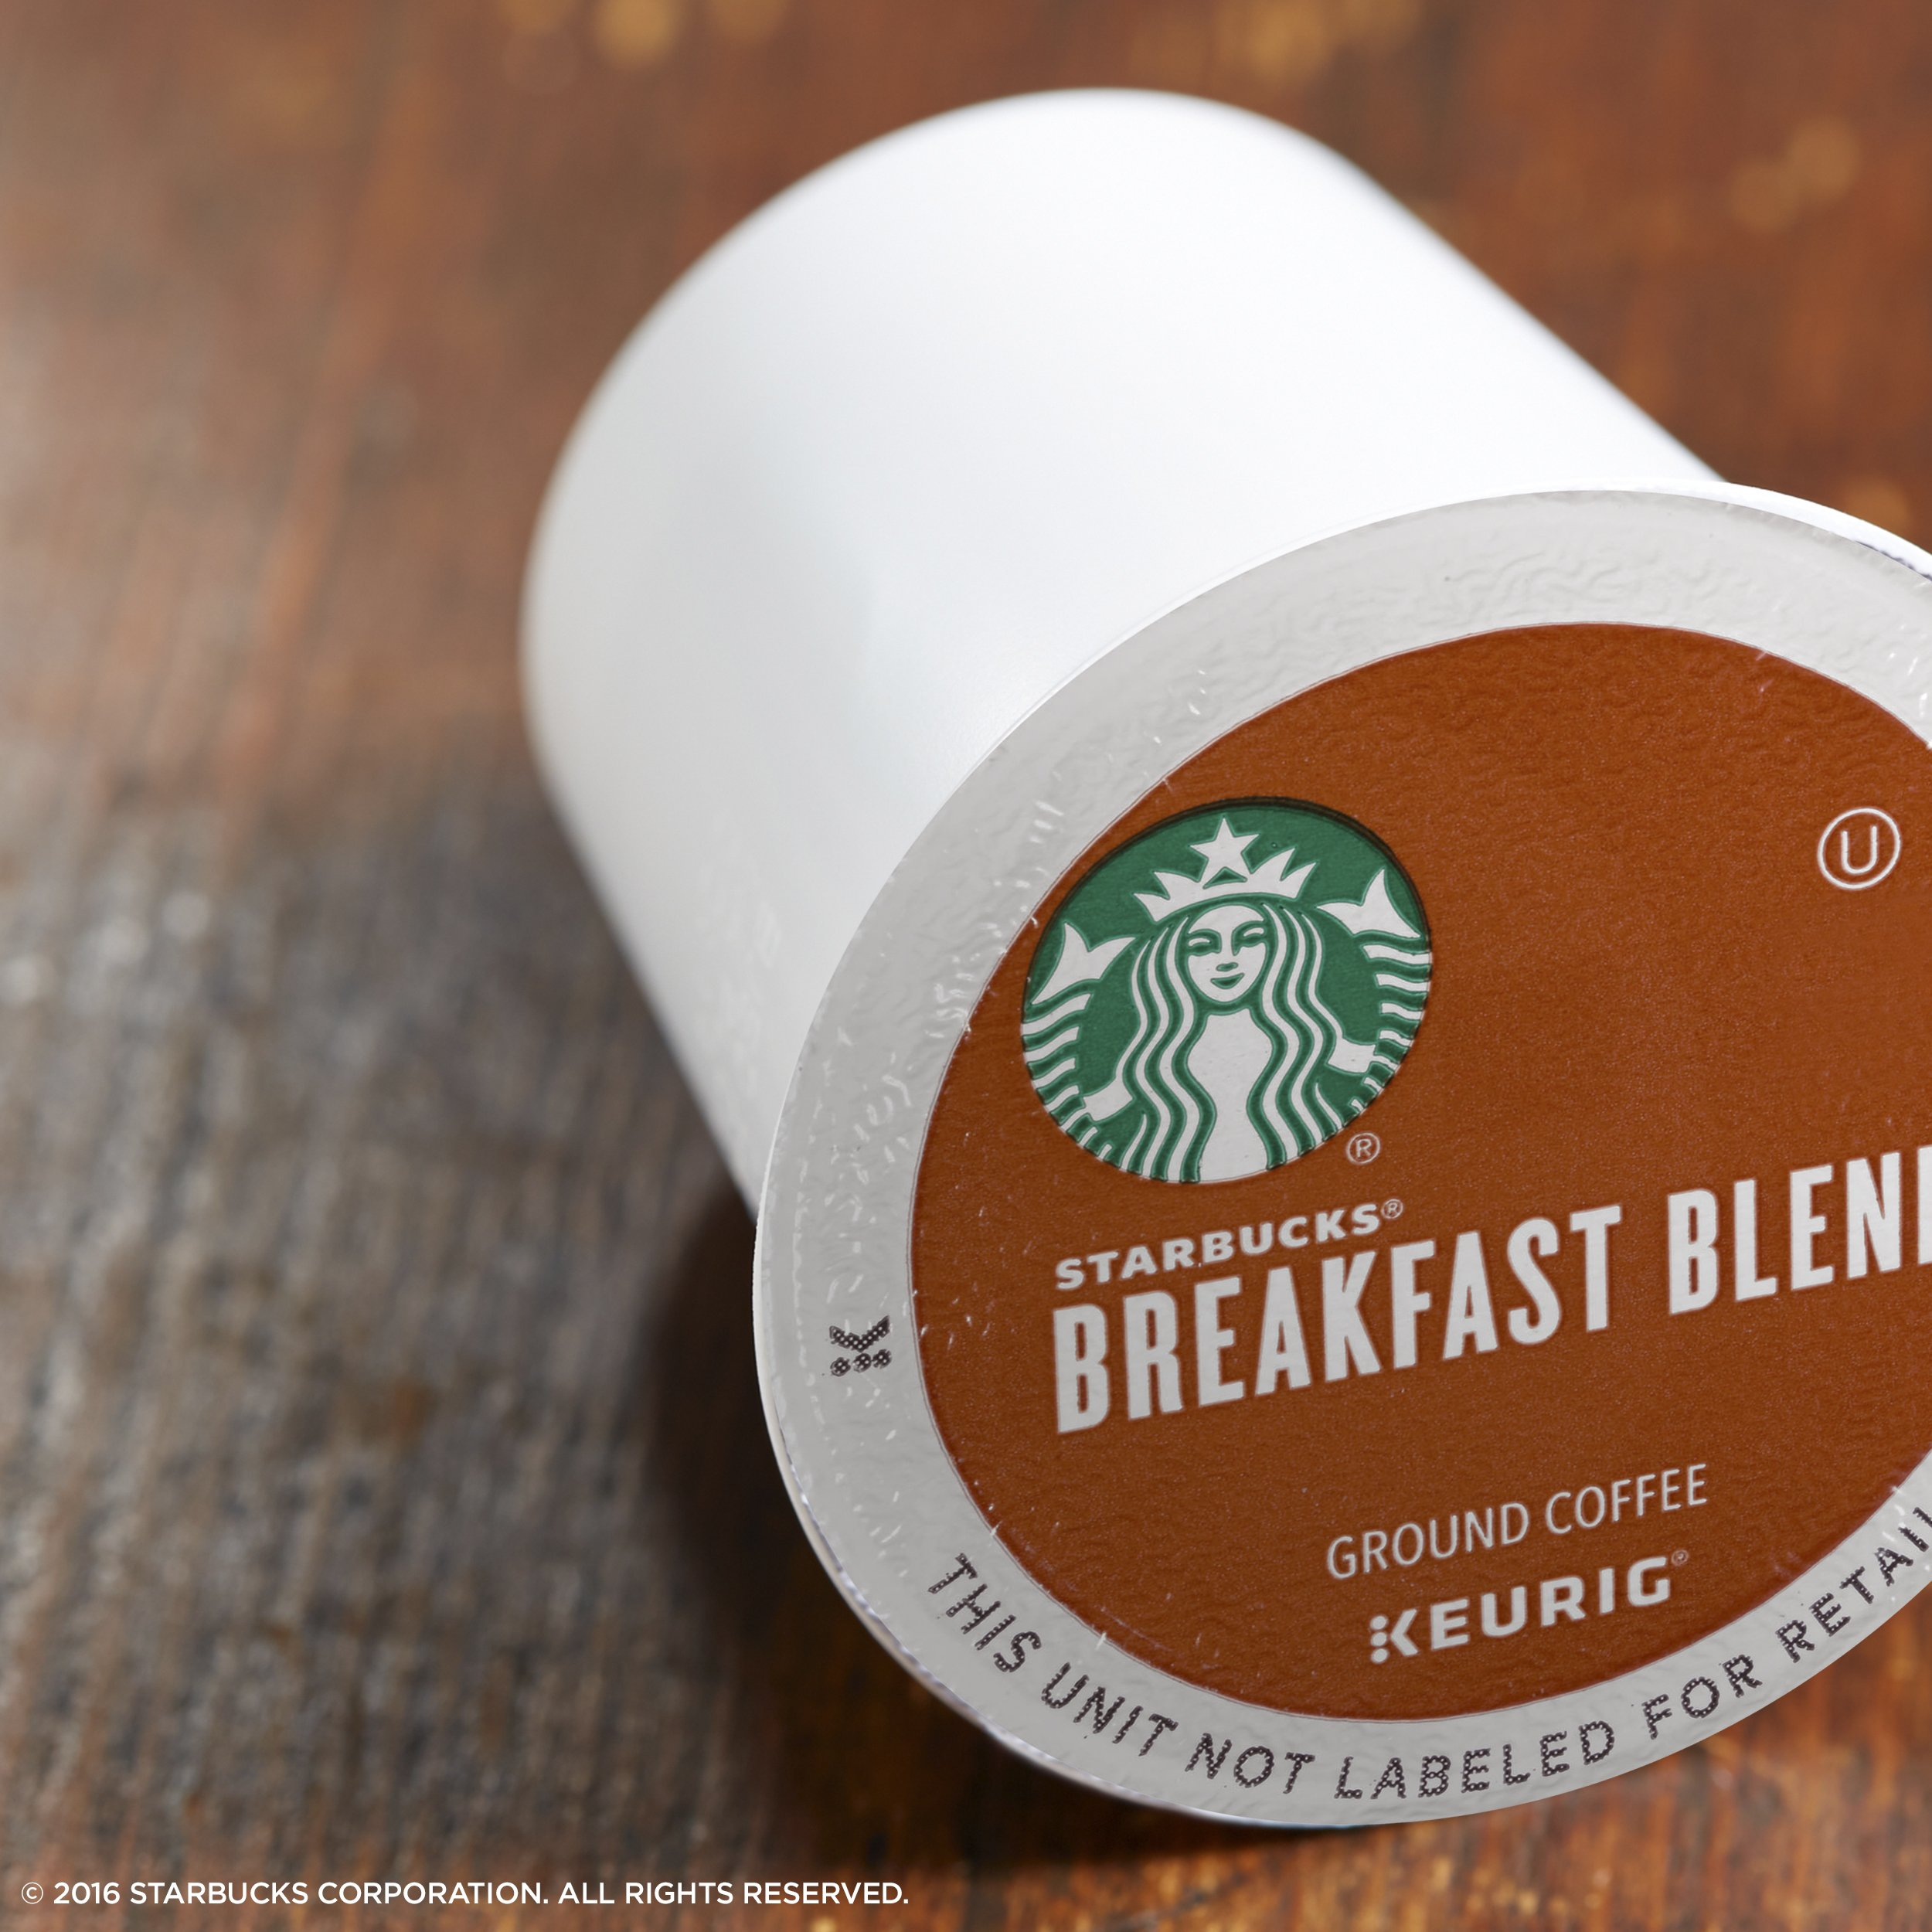 Starbucks Breakfast Blend Medium Roast Single Cup Coffee for Keurig Brewers, 6 Boxes of 10 (60 Total K-Cup pods) by Starbucks (Image #6)